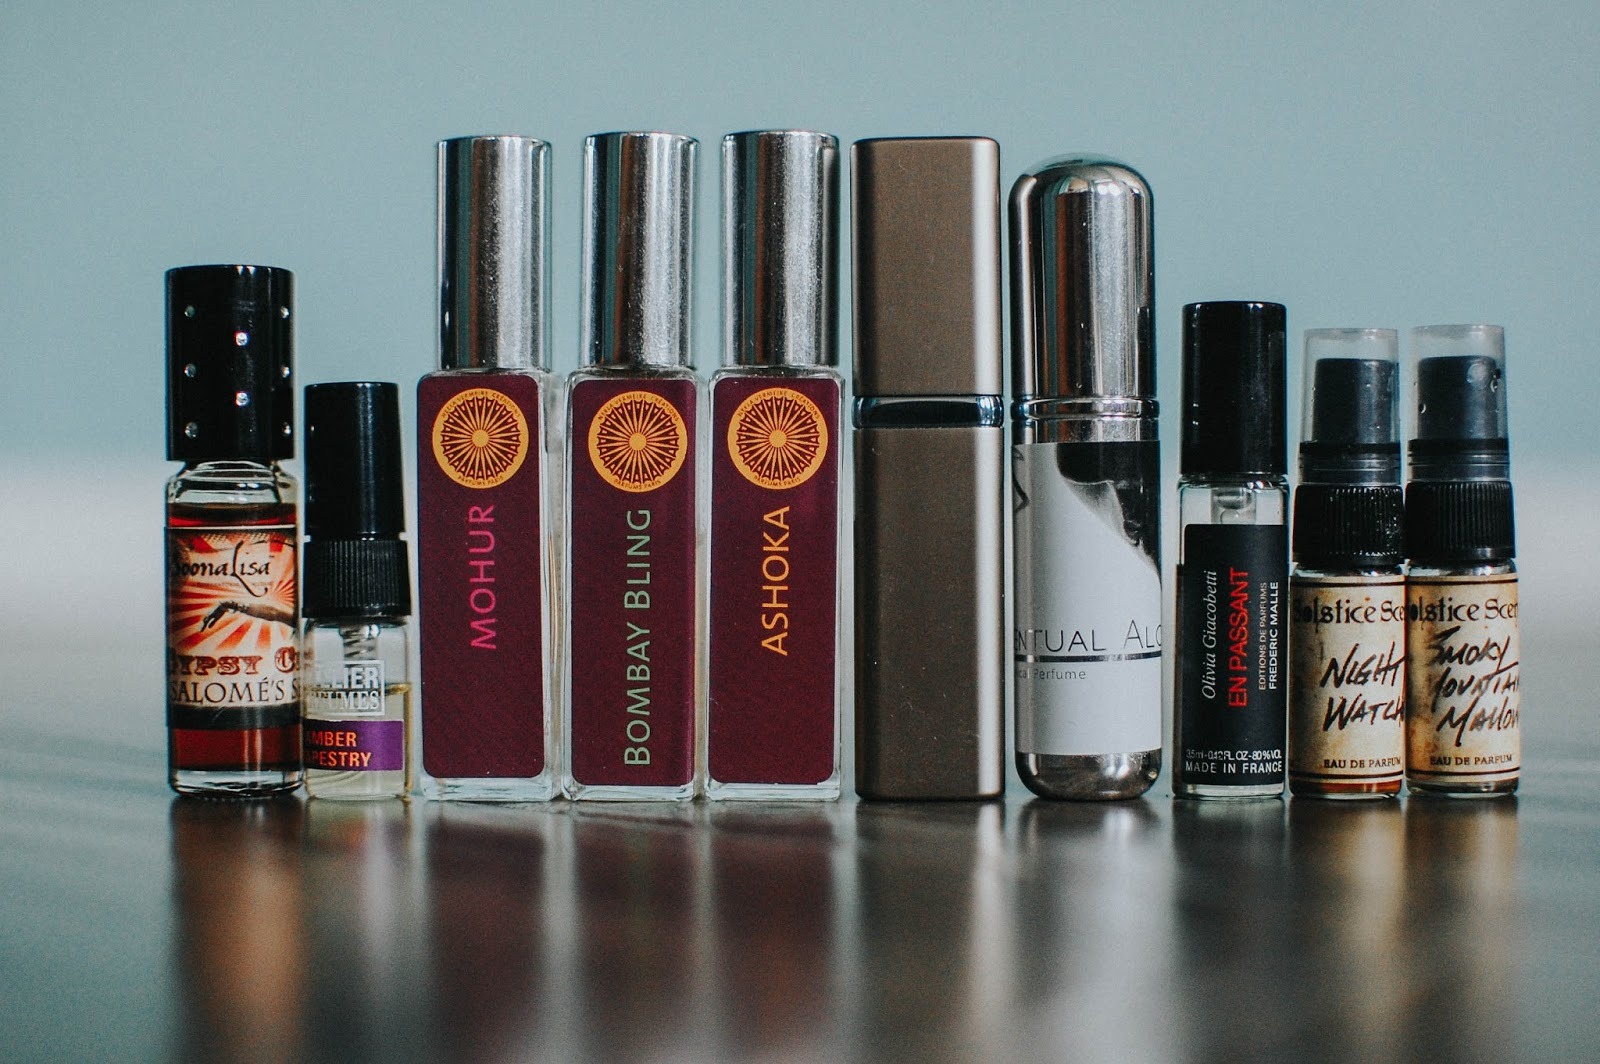 The Redolent Mermaid: My Current Perfume Collection